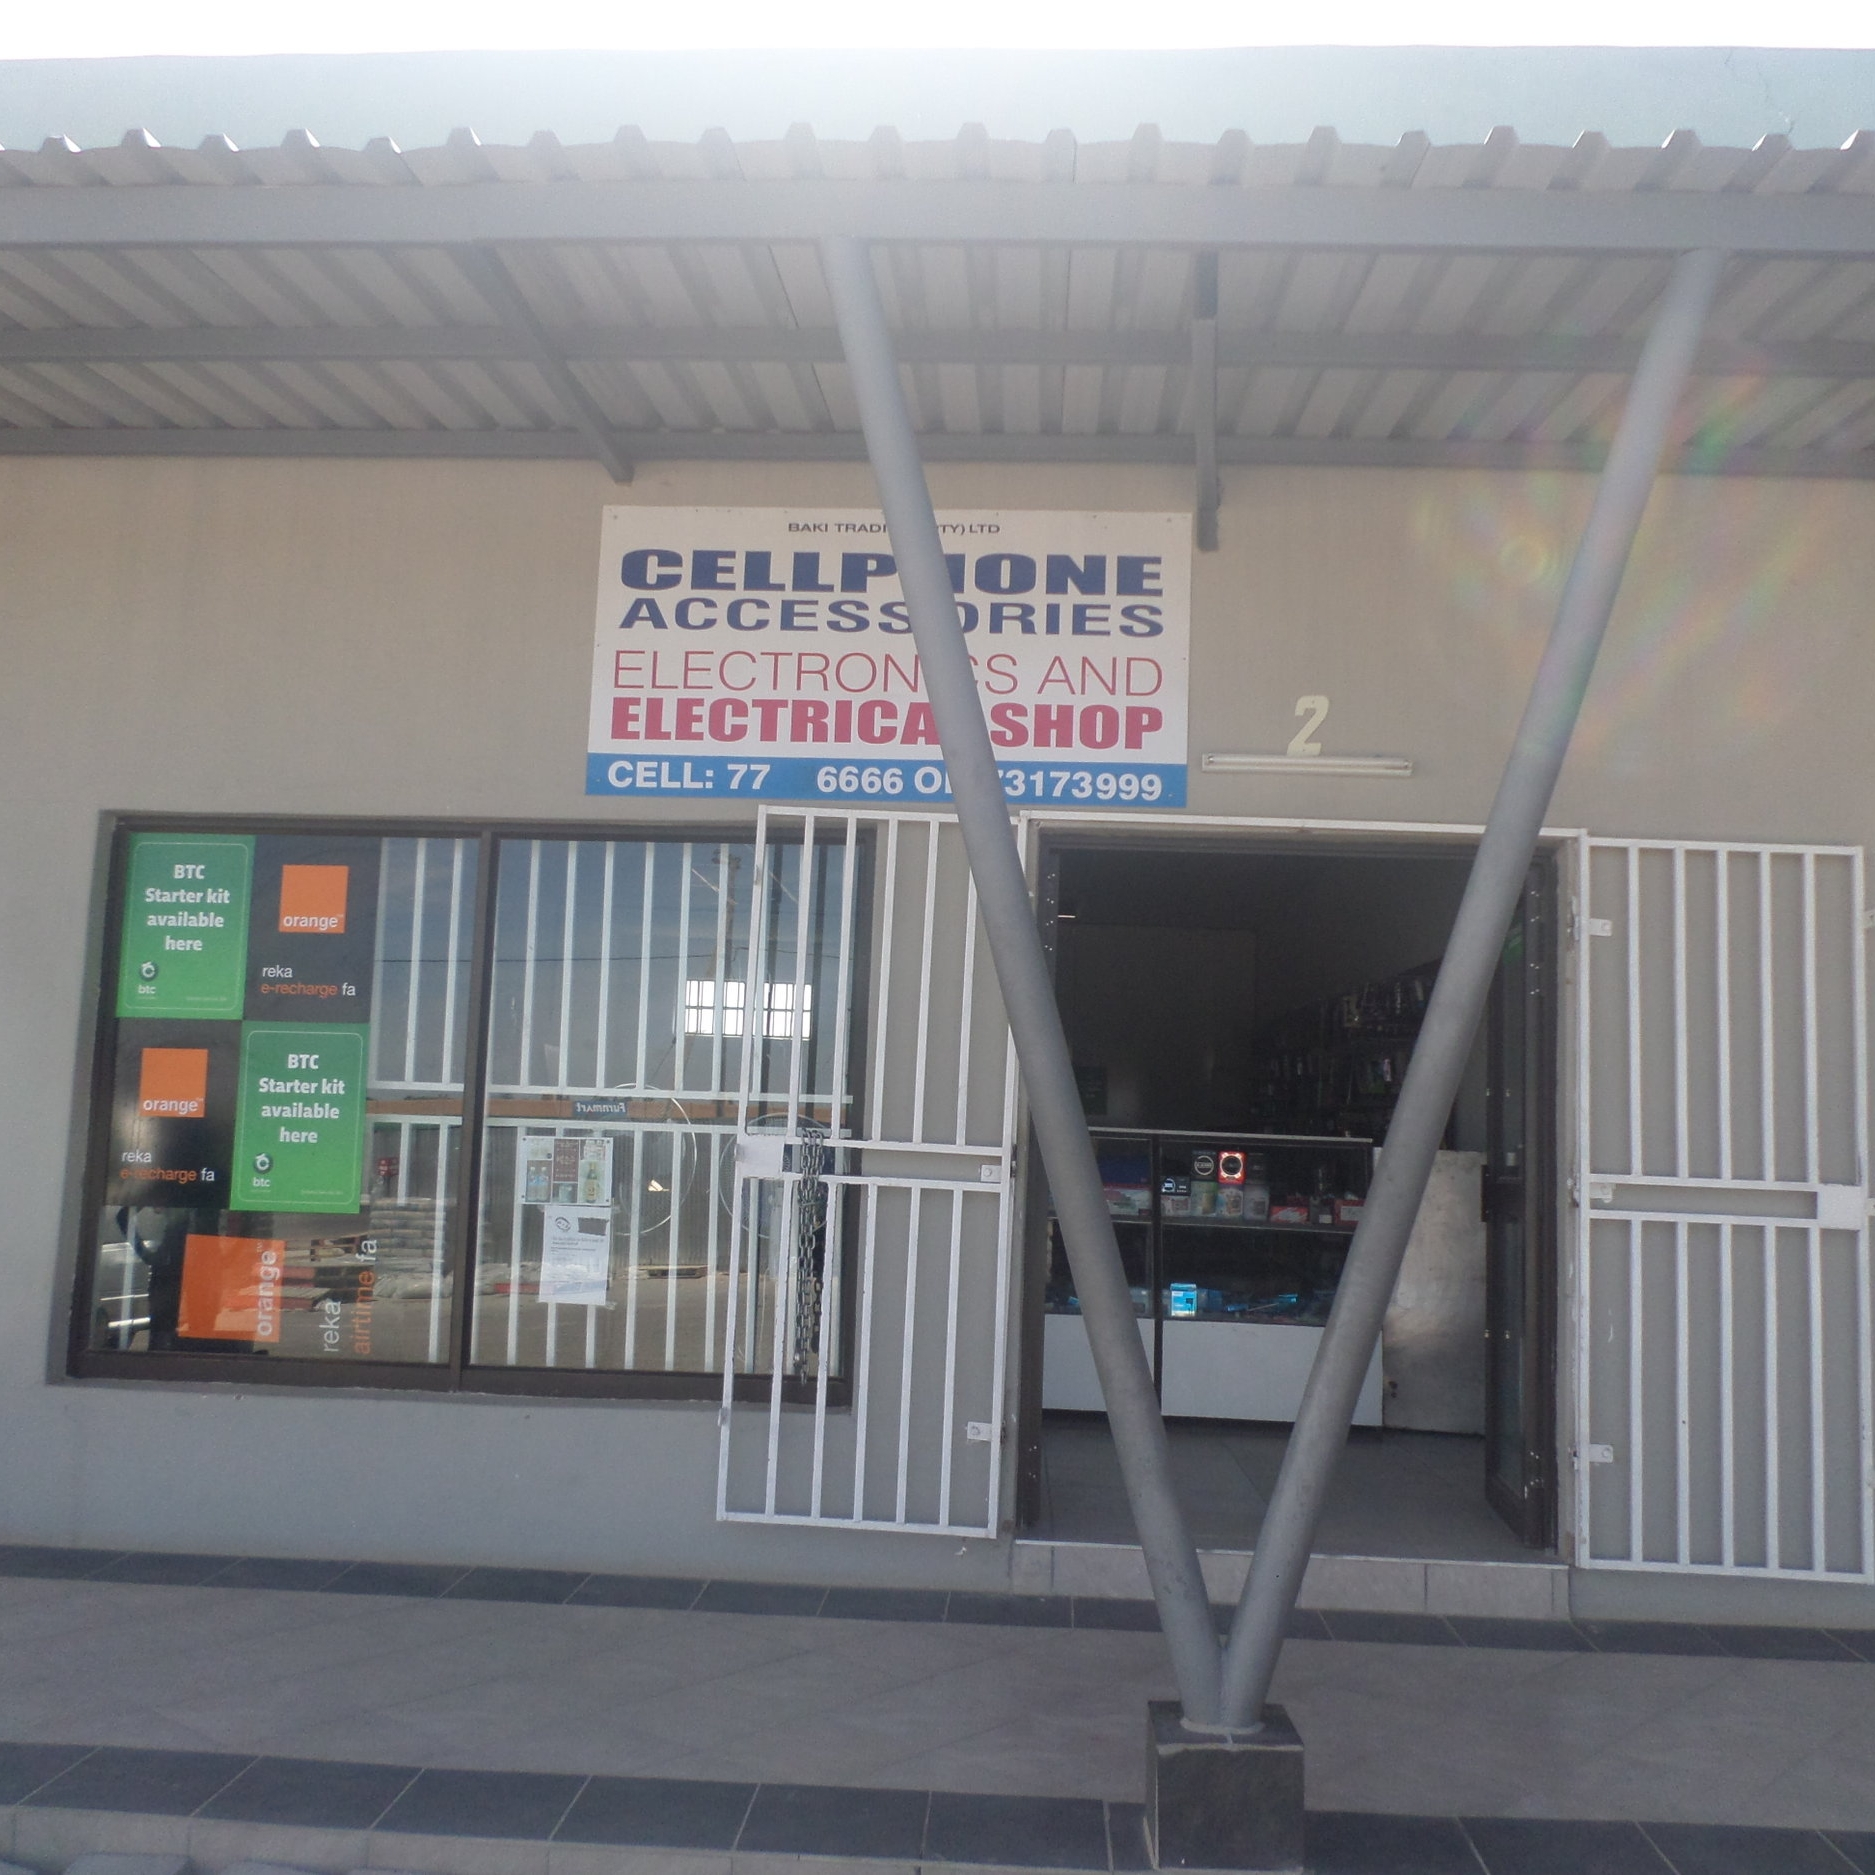 Baki Trading - Service Description∙ Cellphone and electronics accesoares.Opening Hours:Monday - Friday: 08:30-17:30Saturday: 09:00-13:00Sunday:Directions:Modimo WardContact: Nazgul Islam📞 (+267) 75 52 11 33✎ @